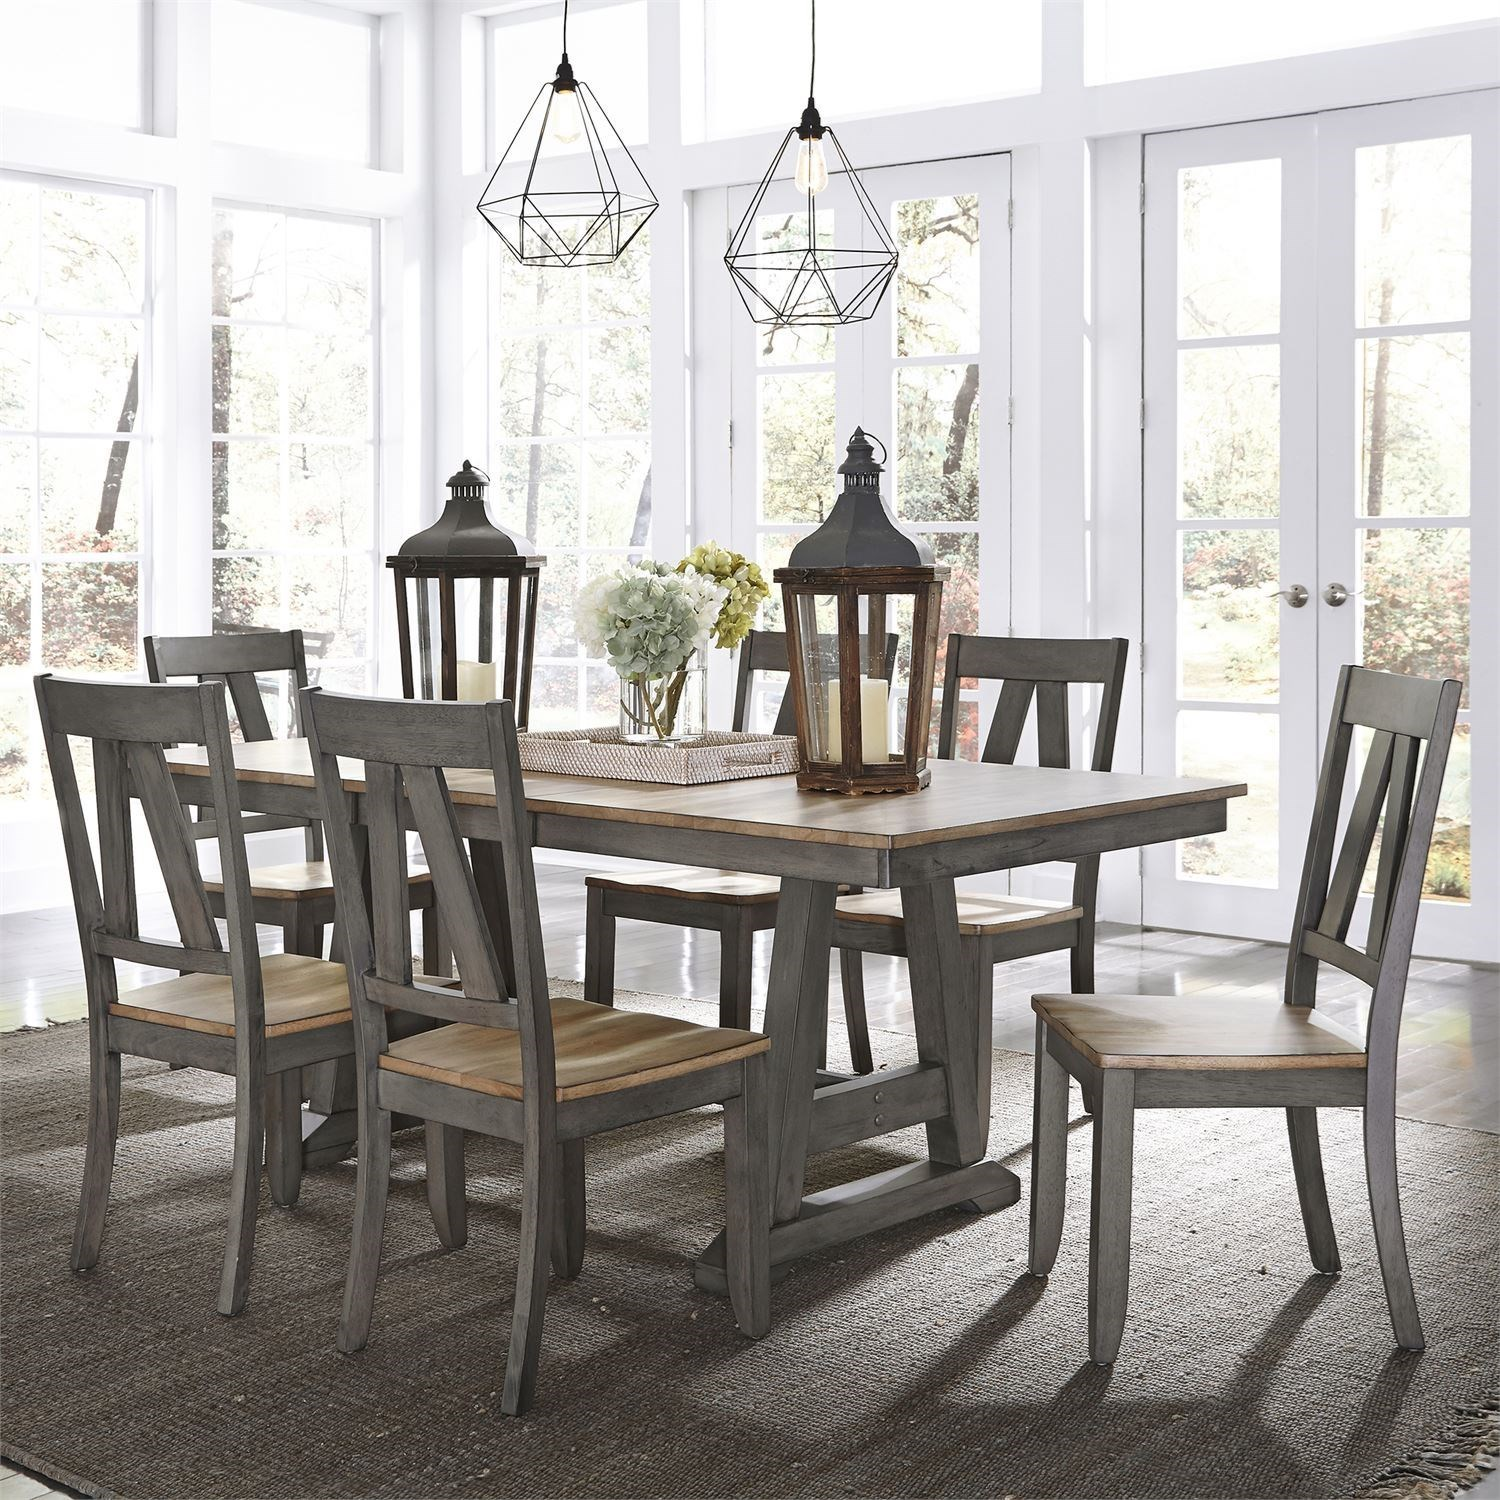 Lindsey Farm 7-Piece Trestle Table Set by Liberty Furniture at Standard Furniture